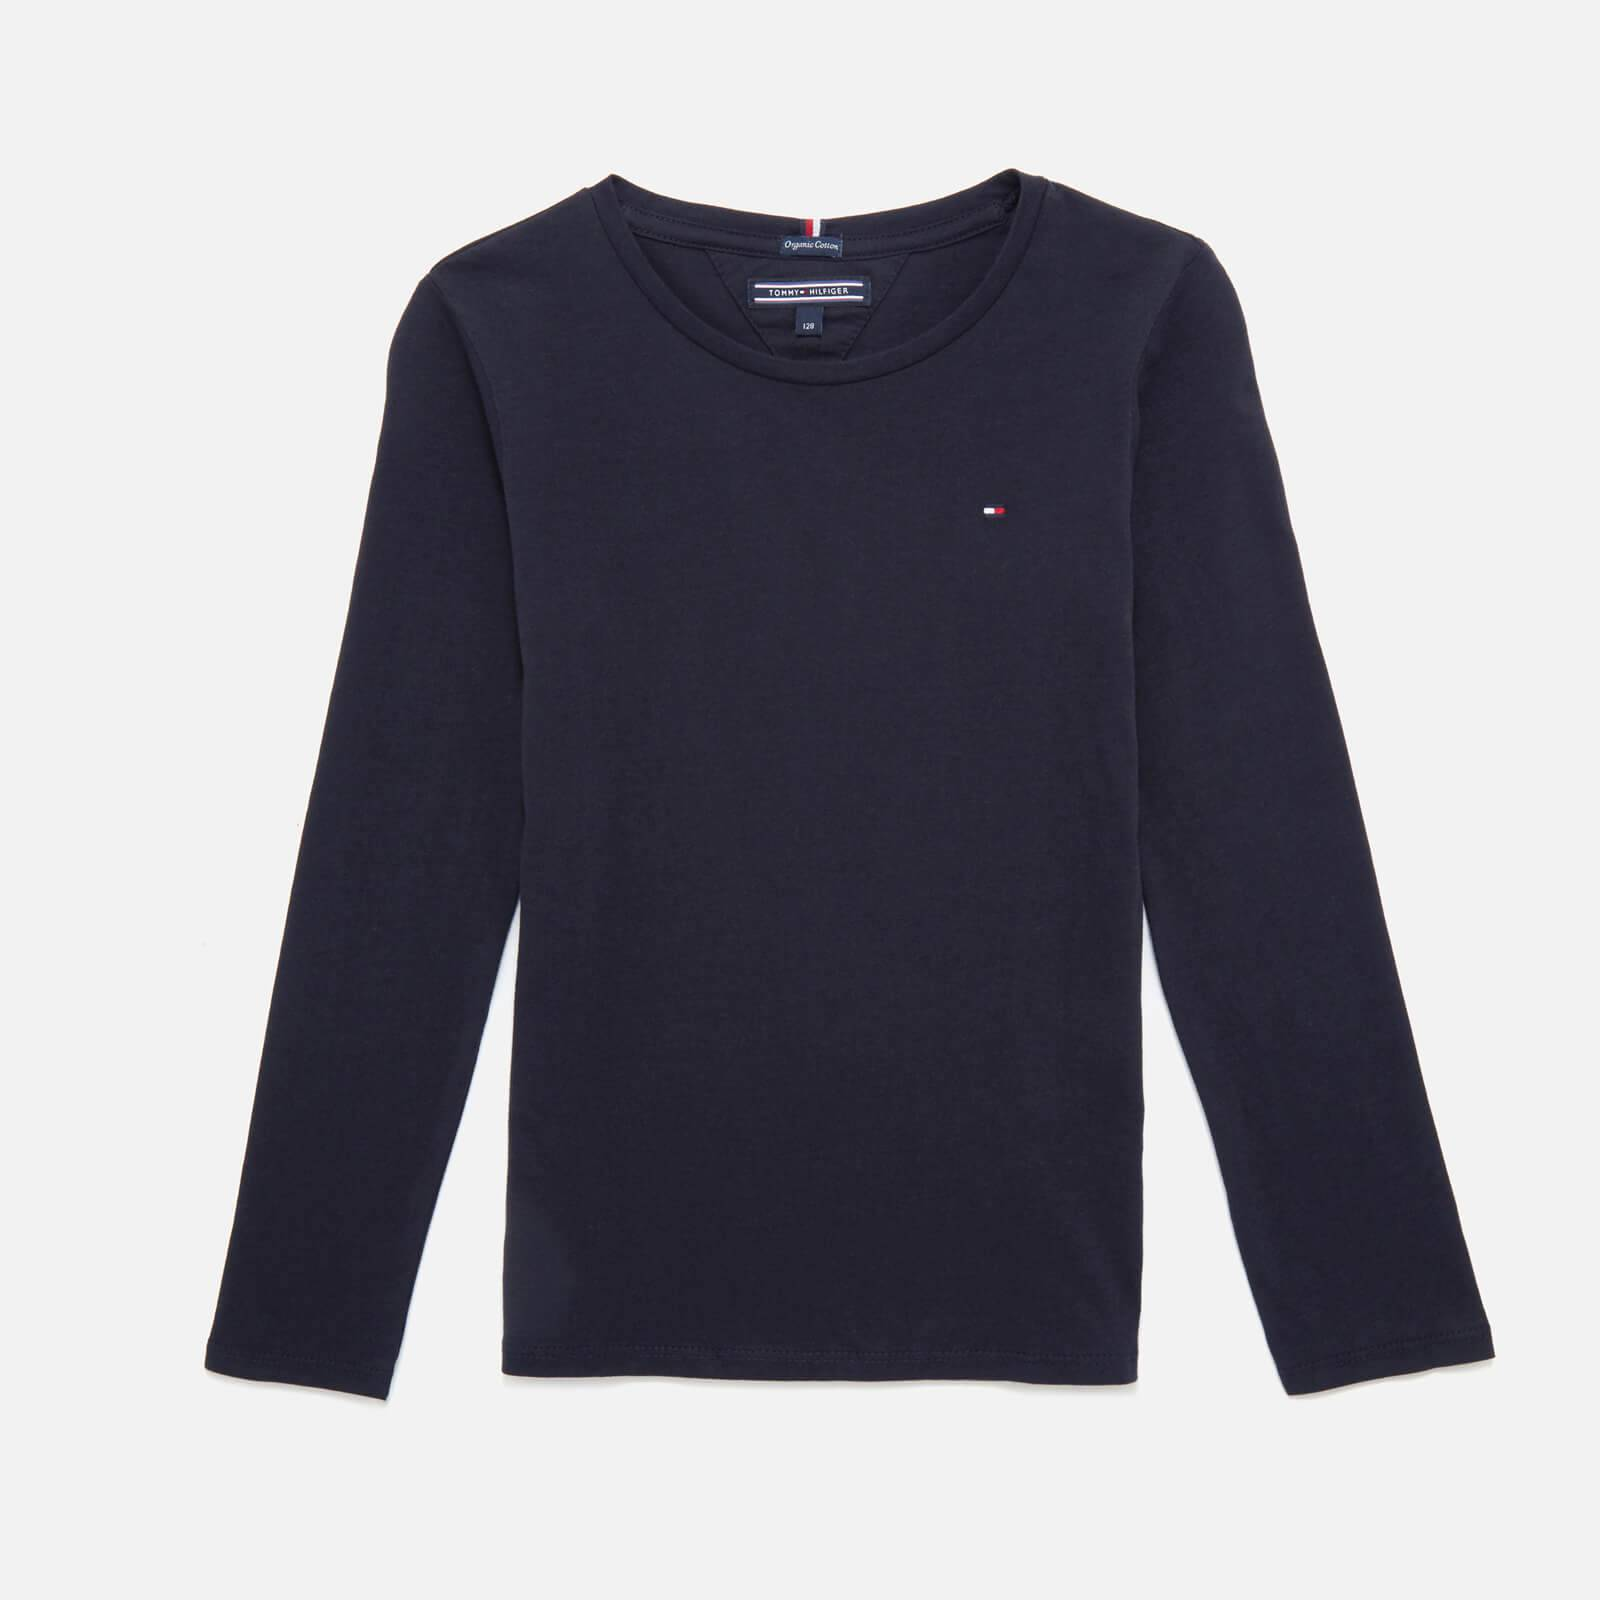 Tommy Kids Girls' Long Sleeve T-Shirt - Sky Captain - 7 Years